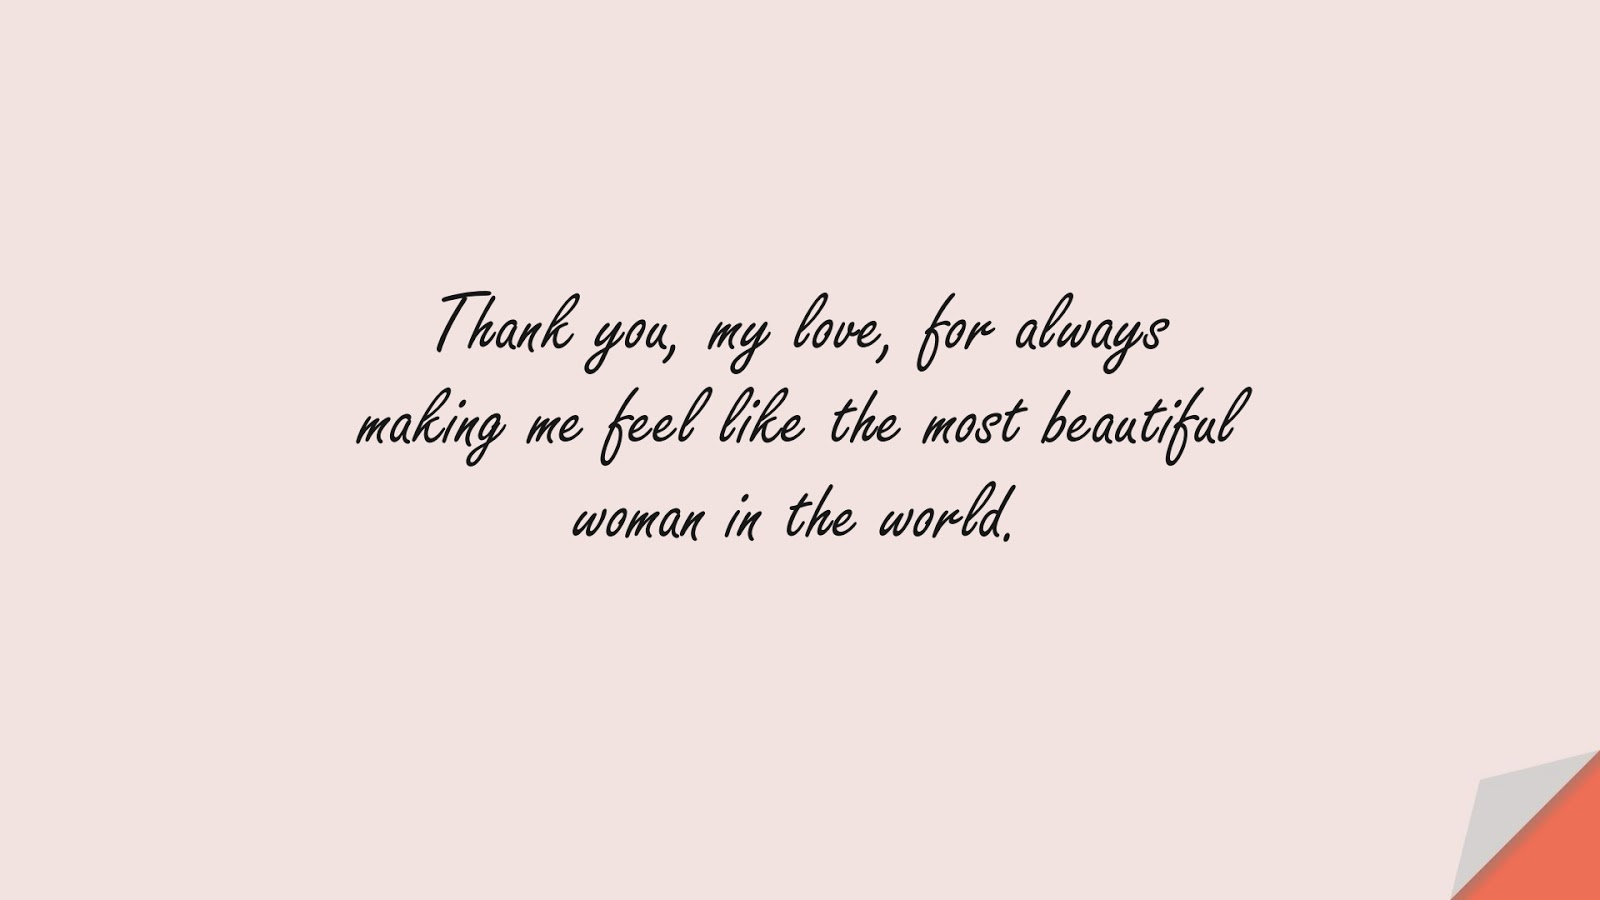 Thank you, my love, for always making me feel like the most beautiful woman in the world.FALSE